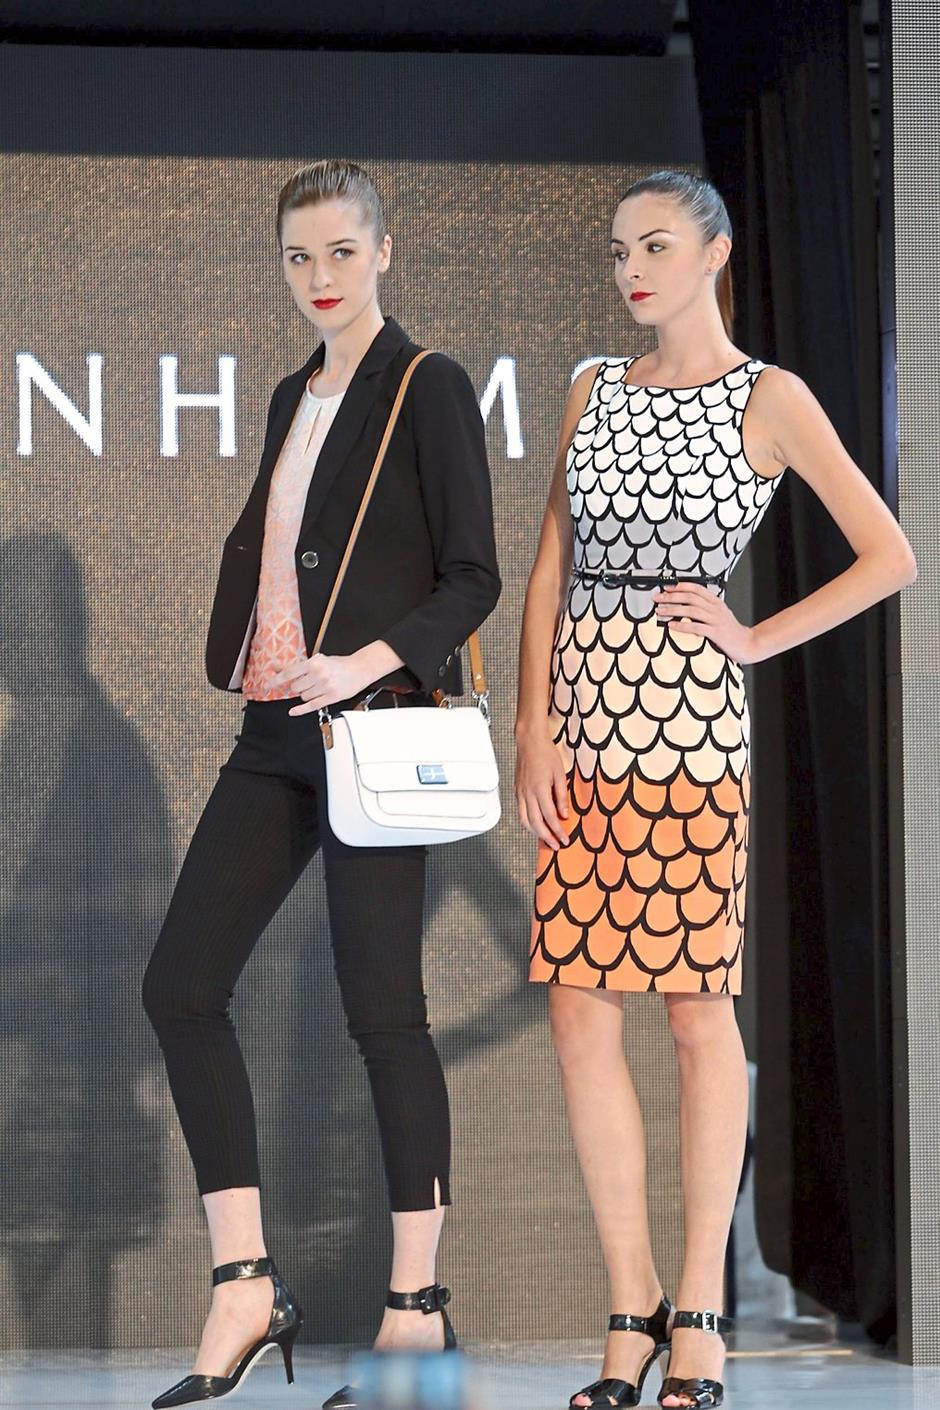 Xxxxxxx: Models showing outfit elegant attires from Debenhams in-house labels. starpic by GOH GAIK LEE/The Star/ 25 April 2015